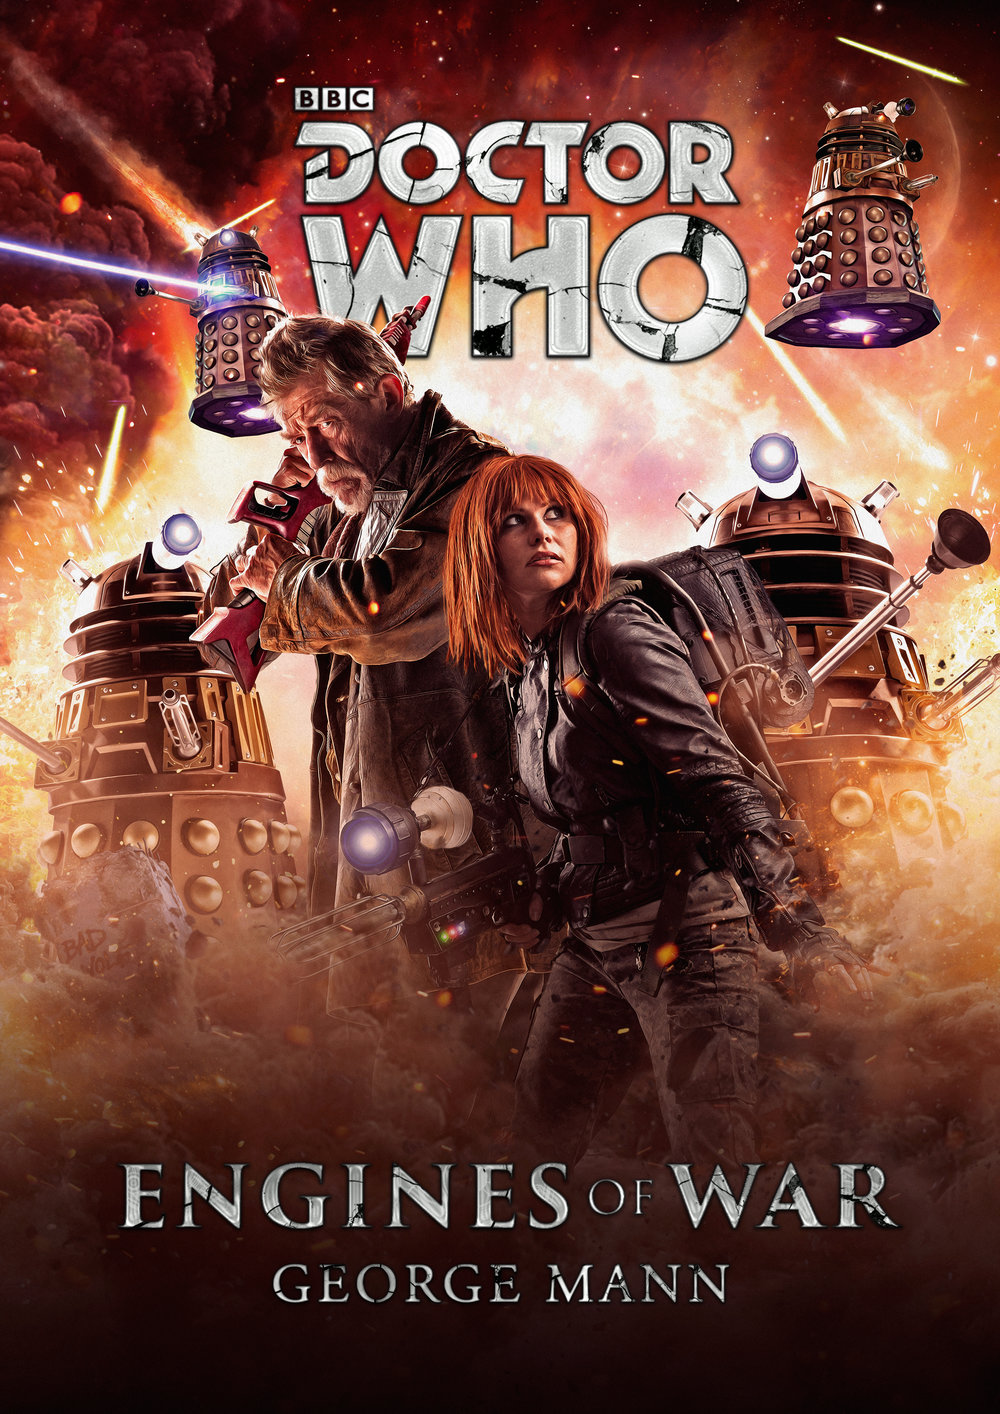 Engines of War   book cover mock-up  by  Will Brooks . John Hurt's War Doctor, Doctor Who, & Daleks © BBC. Cinder photo by:  Greg De Stefano . Special Thanks:  Paul Hanley , George Mann, Brian Uiga, and Vanessa Walton.